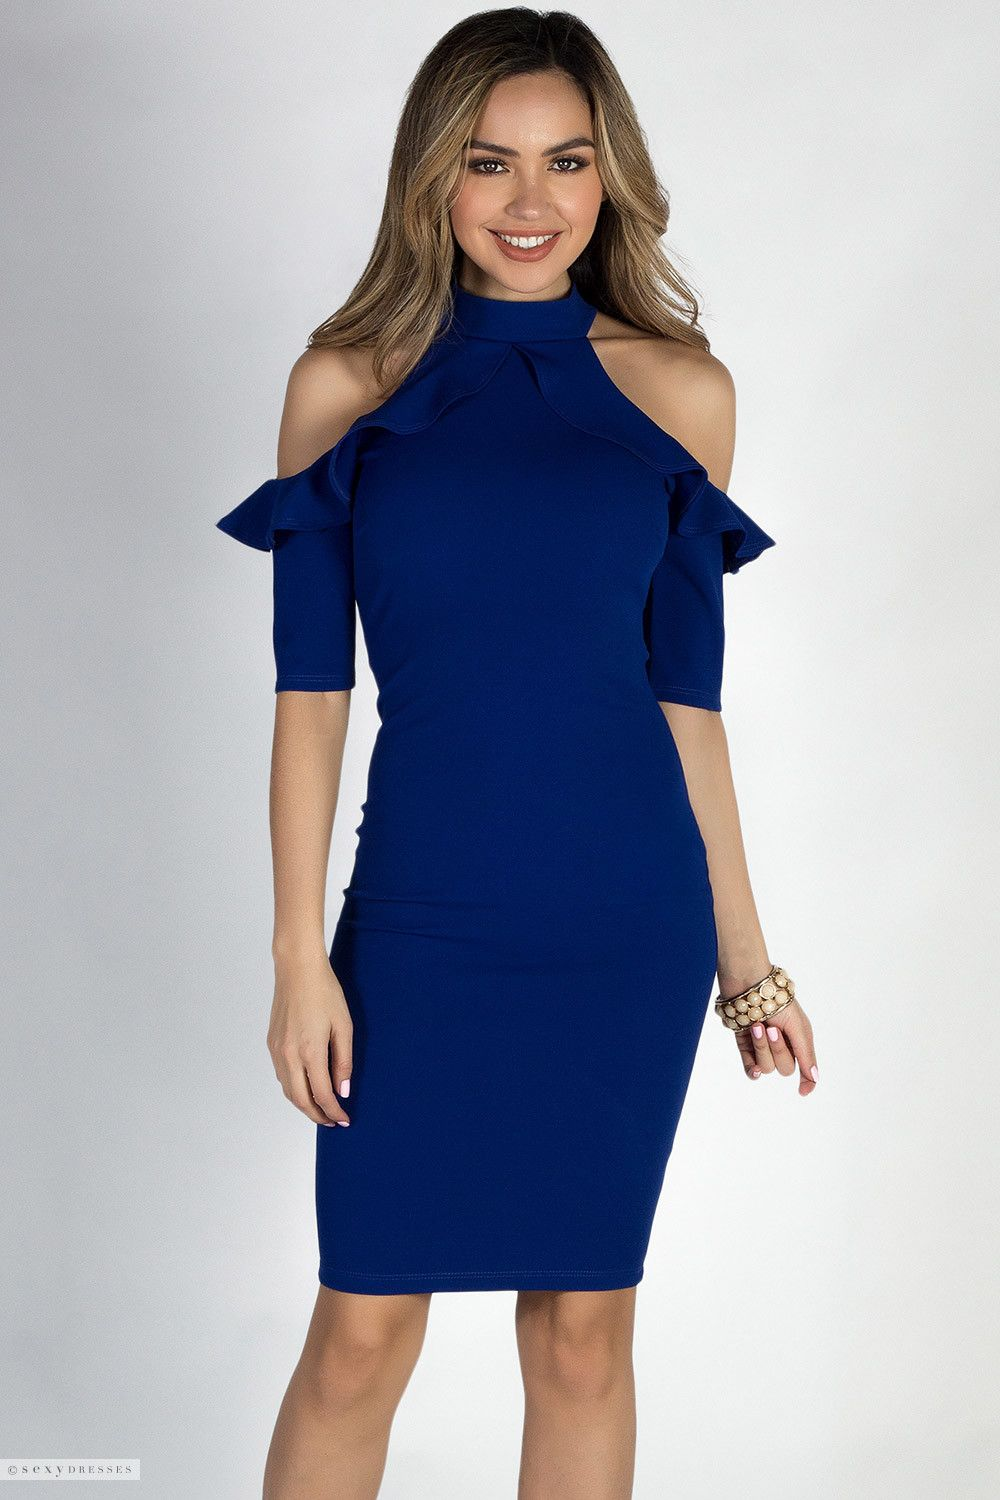 c45cf516bc2 Heart of the Ocean Royal High Neck Cold Shoulder Ruffle Cocktail Dress. 3 4  Sleeve Bodycon Midi Sexy Blue Dress with Ruffled Cut Outs